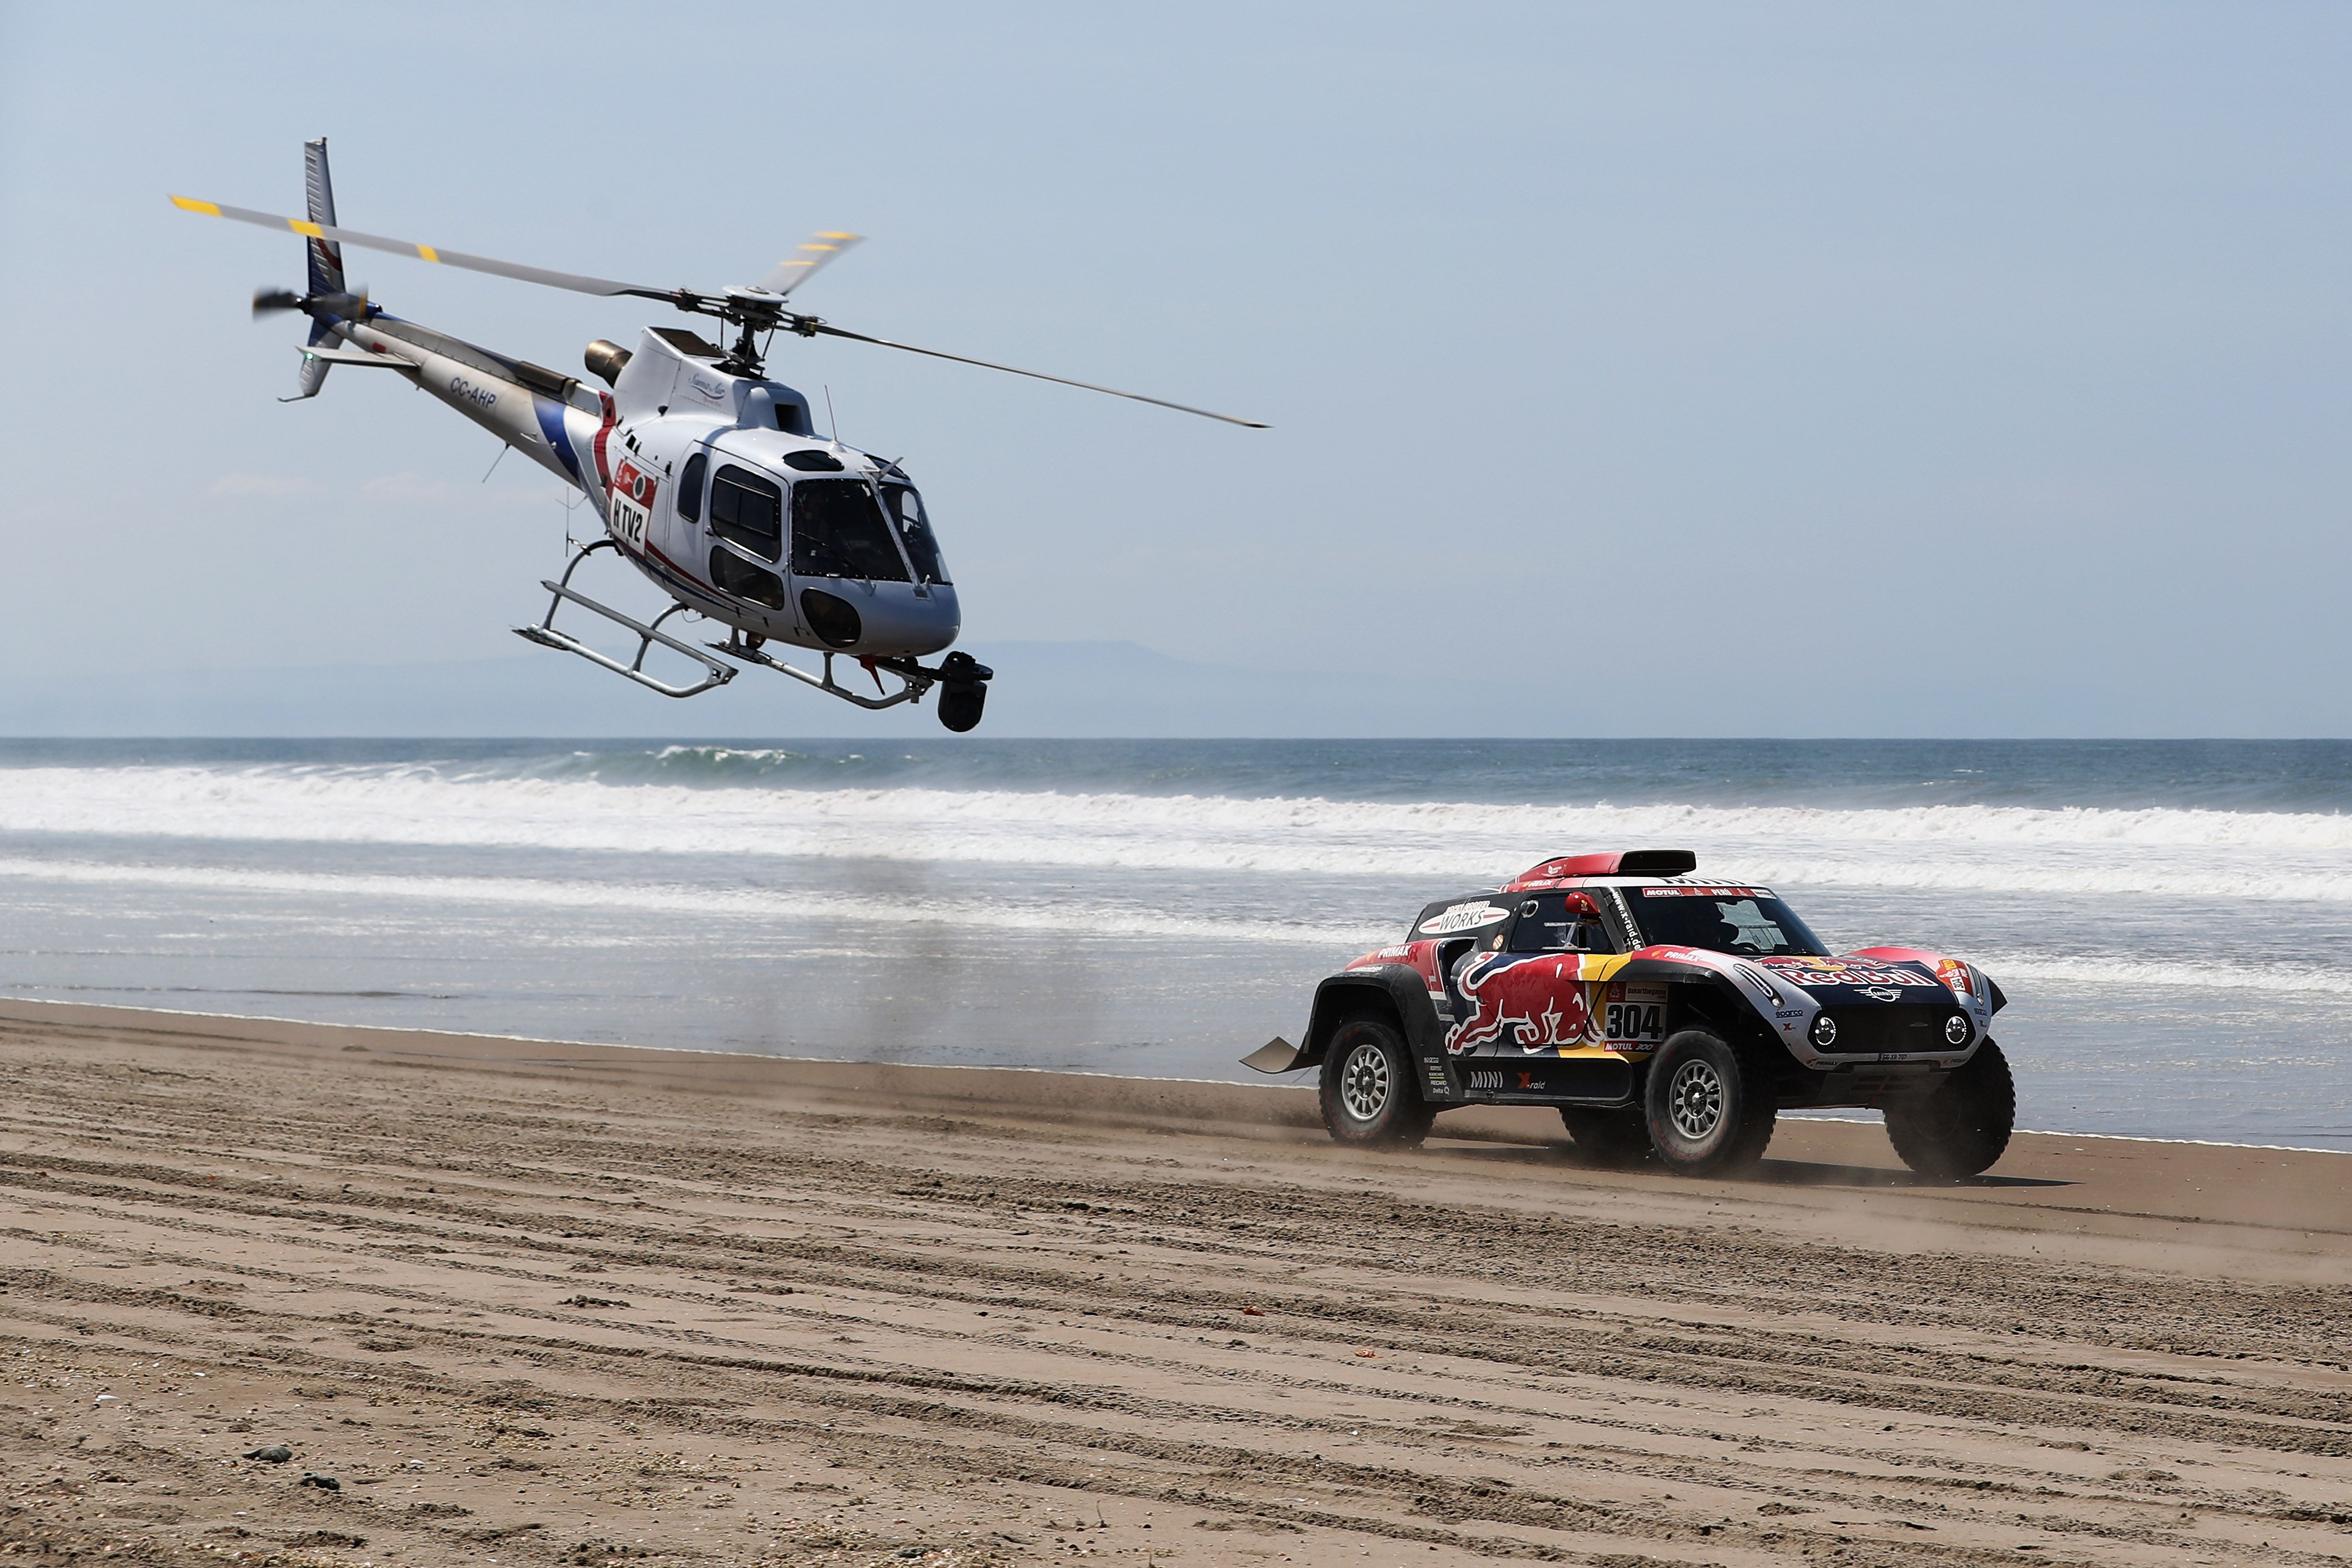 Stage 5 of the Dakar Rally